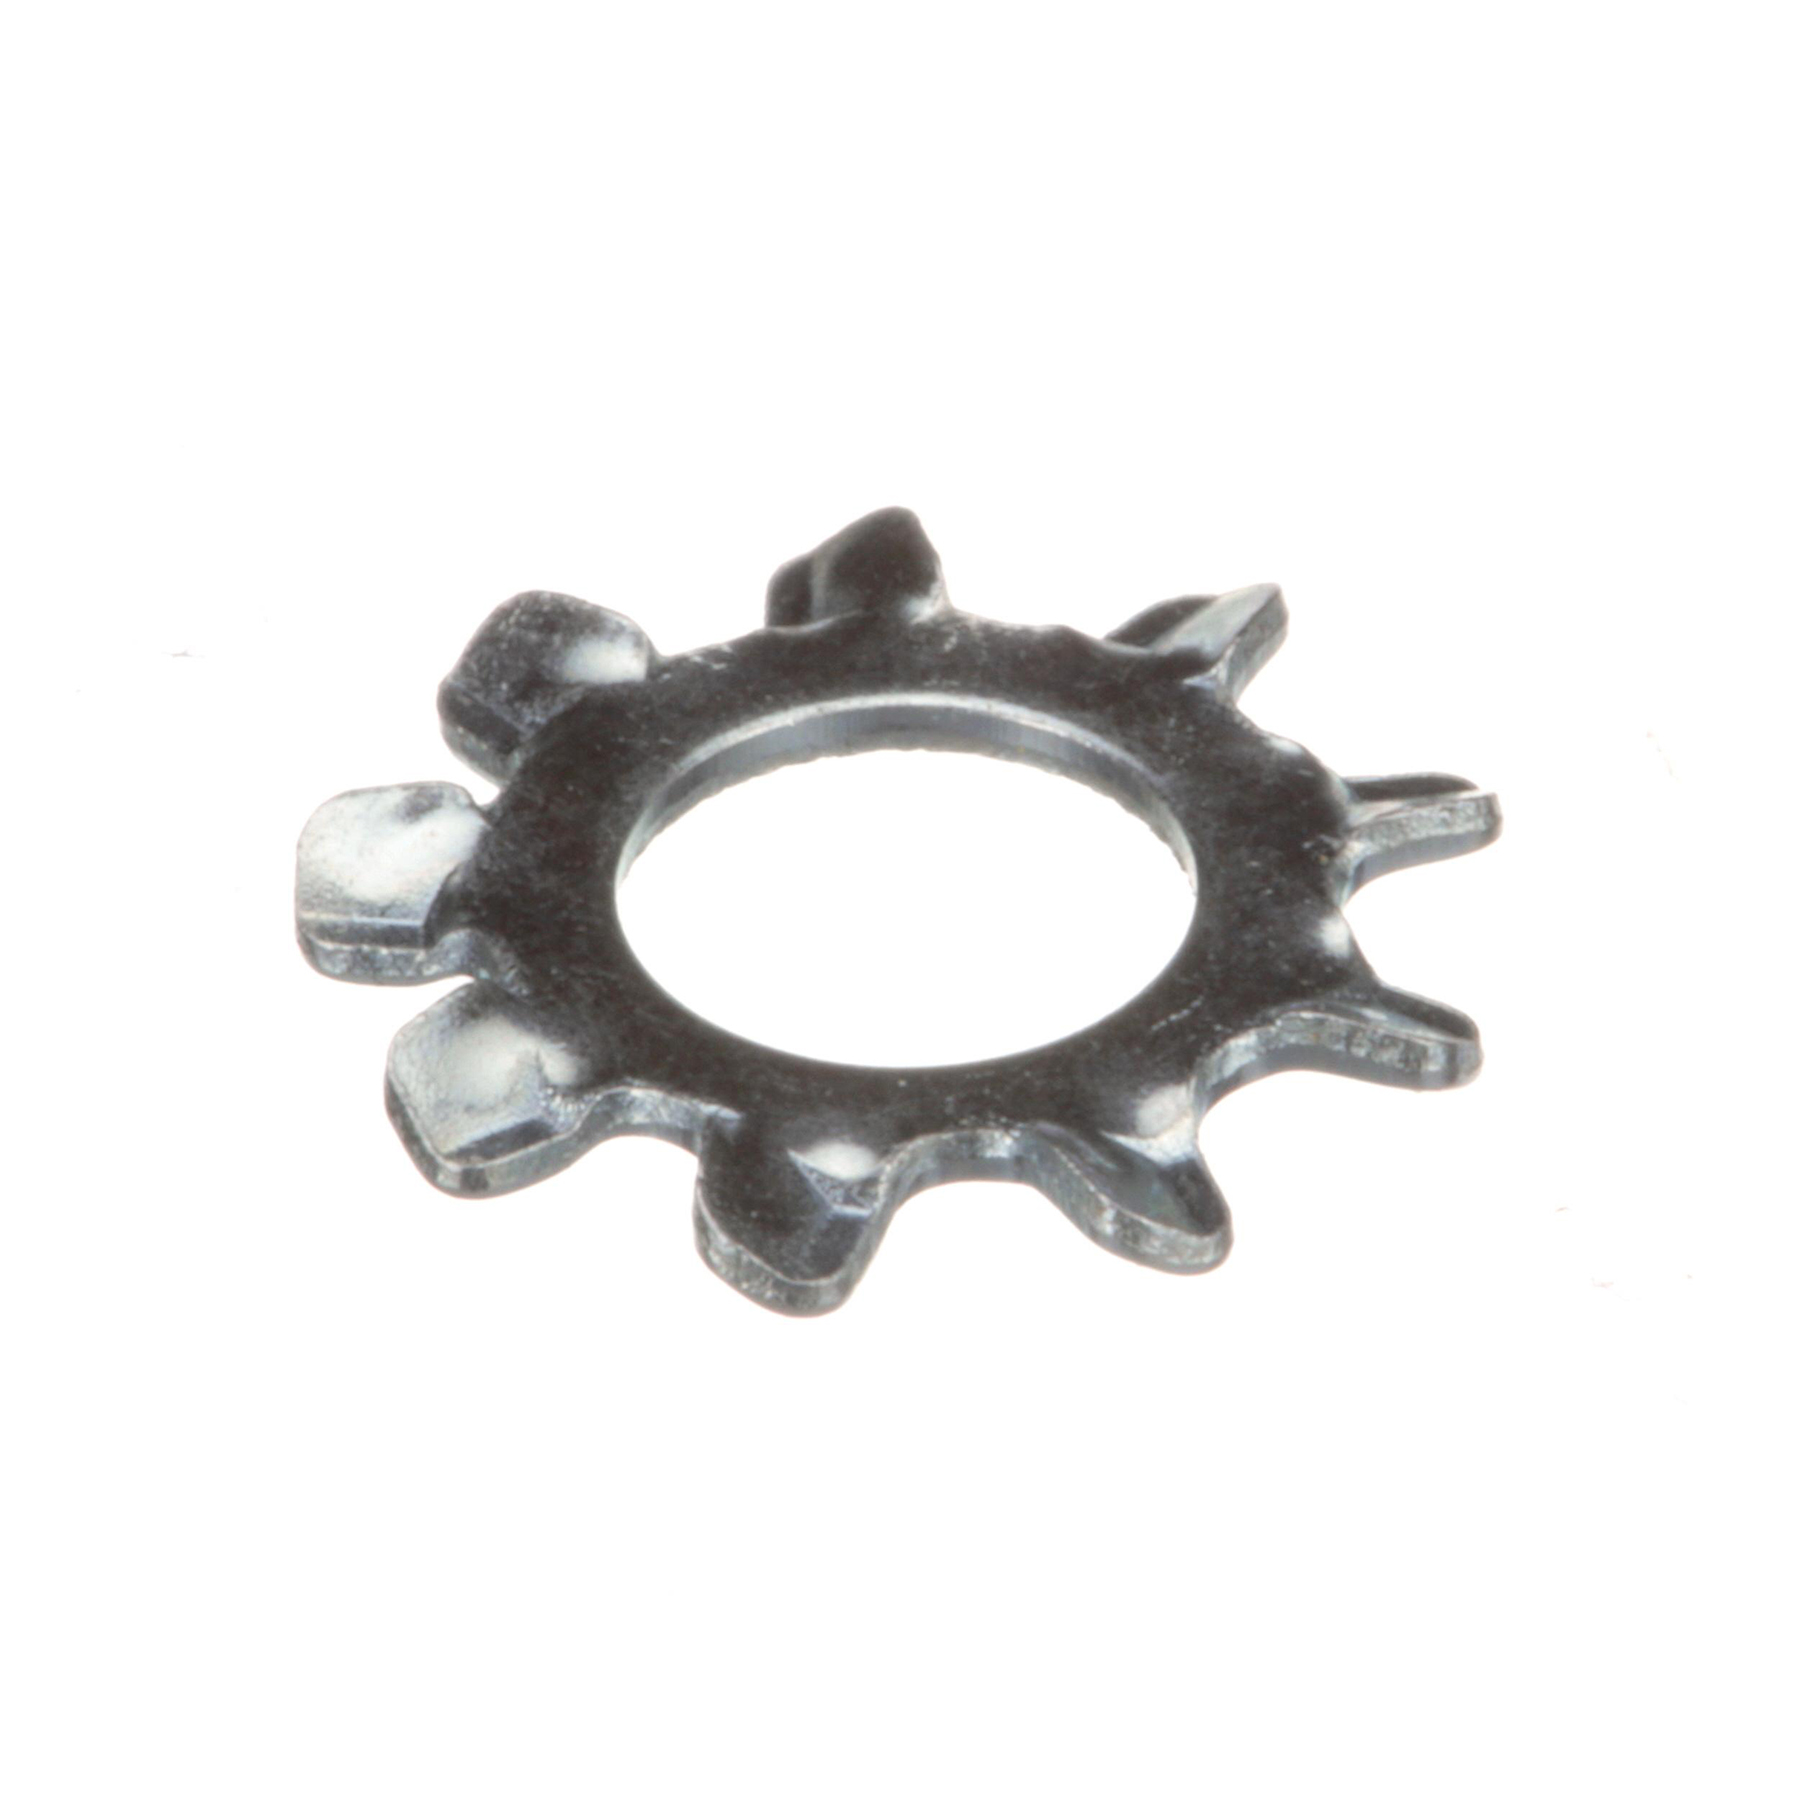 Star Washer for Protection Cap, DBW-2010